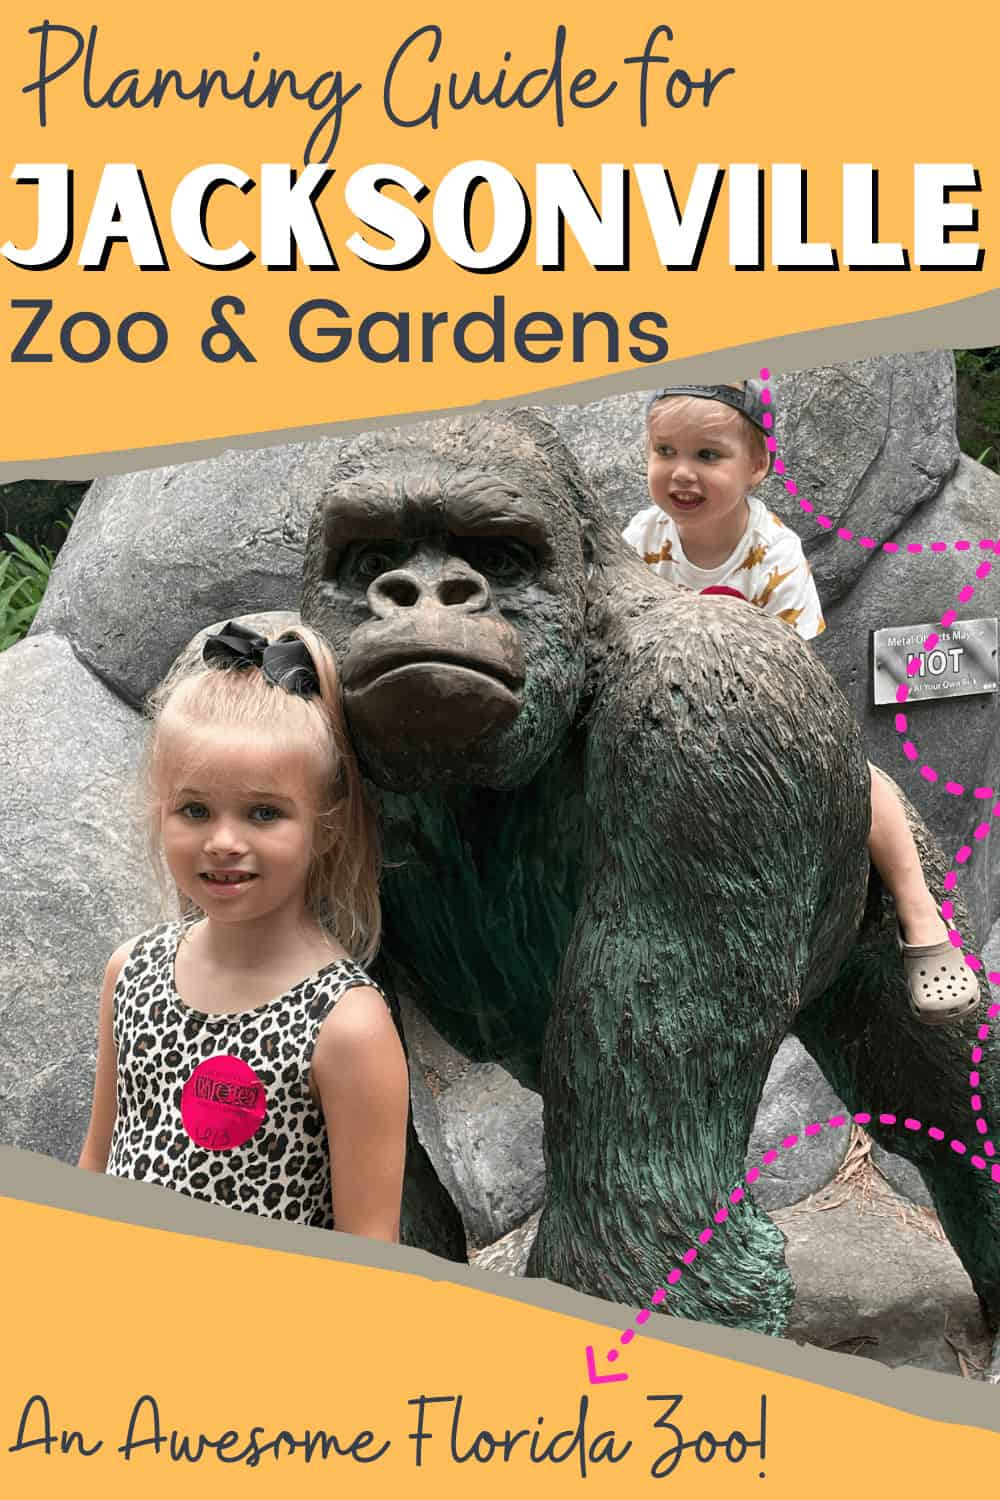 best zoos in florida - planning guide for visiting jacksonville zoo and gardens in jacksonville, florida